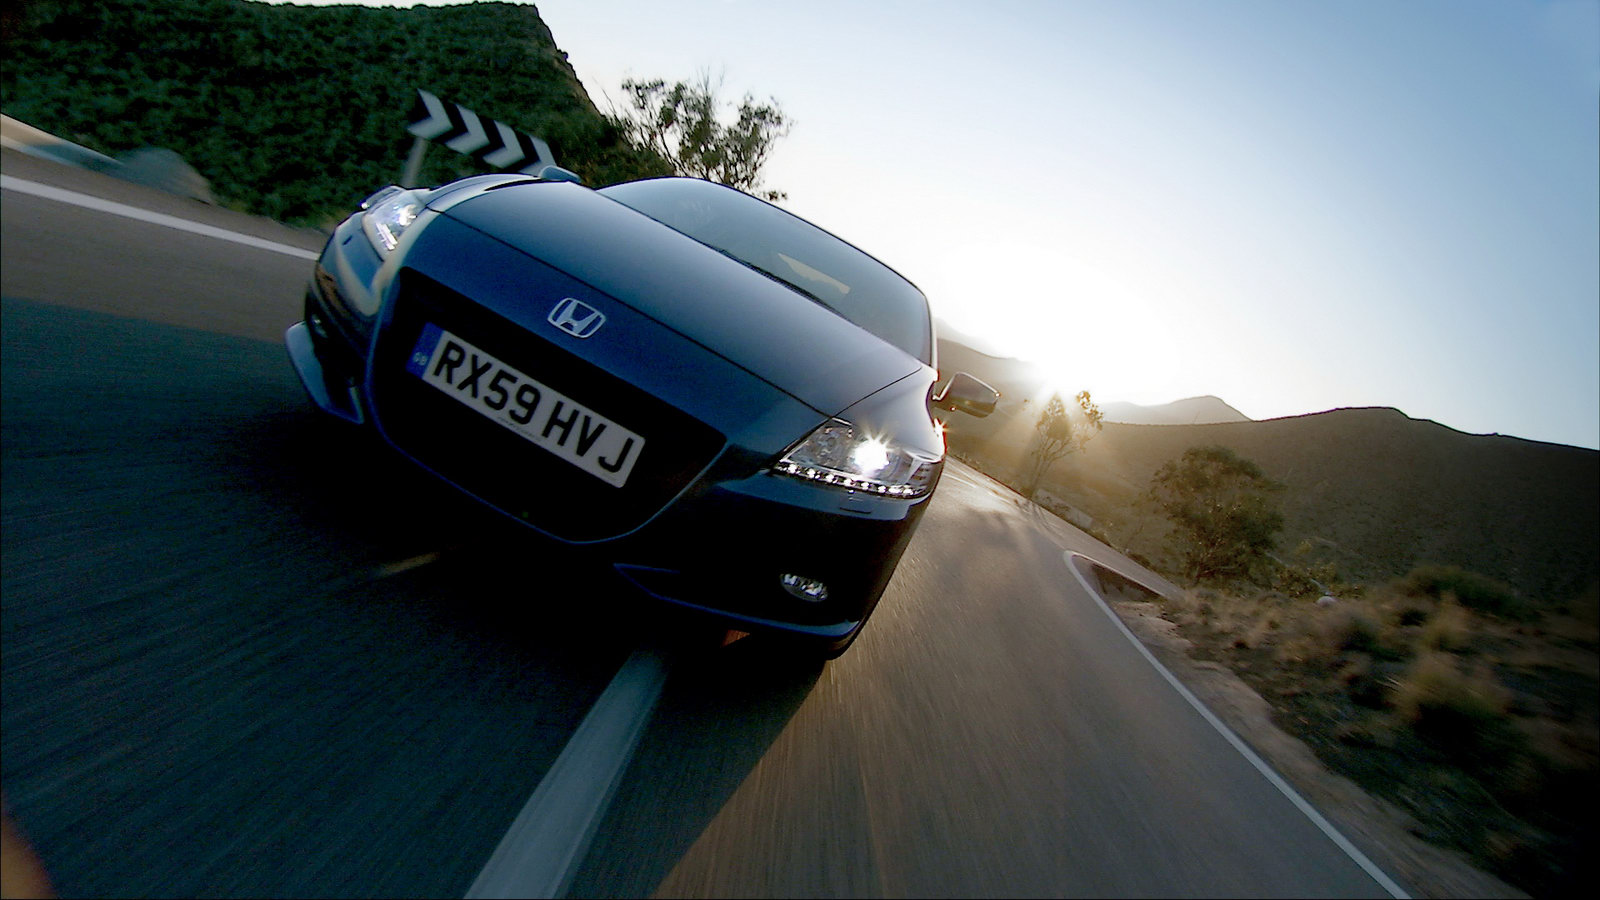 New Honda CR-Z